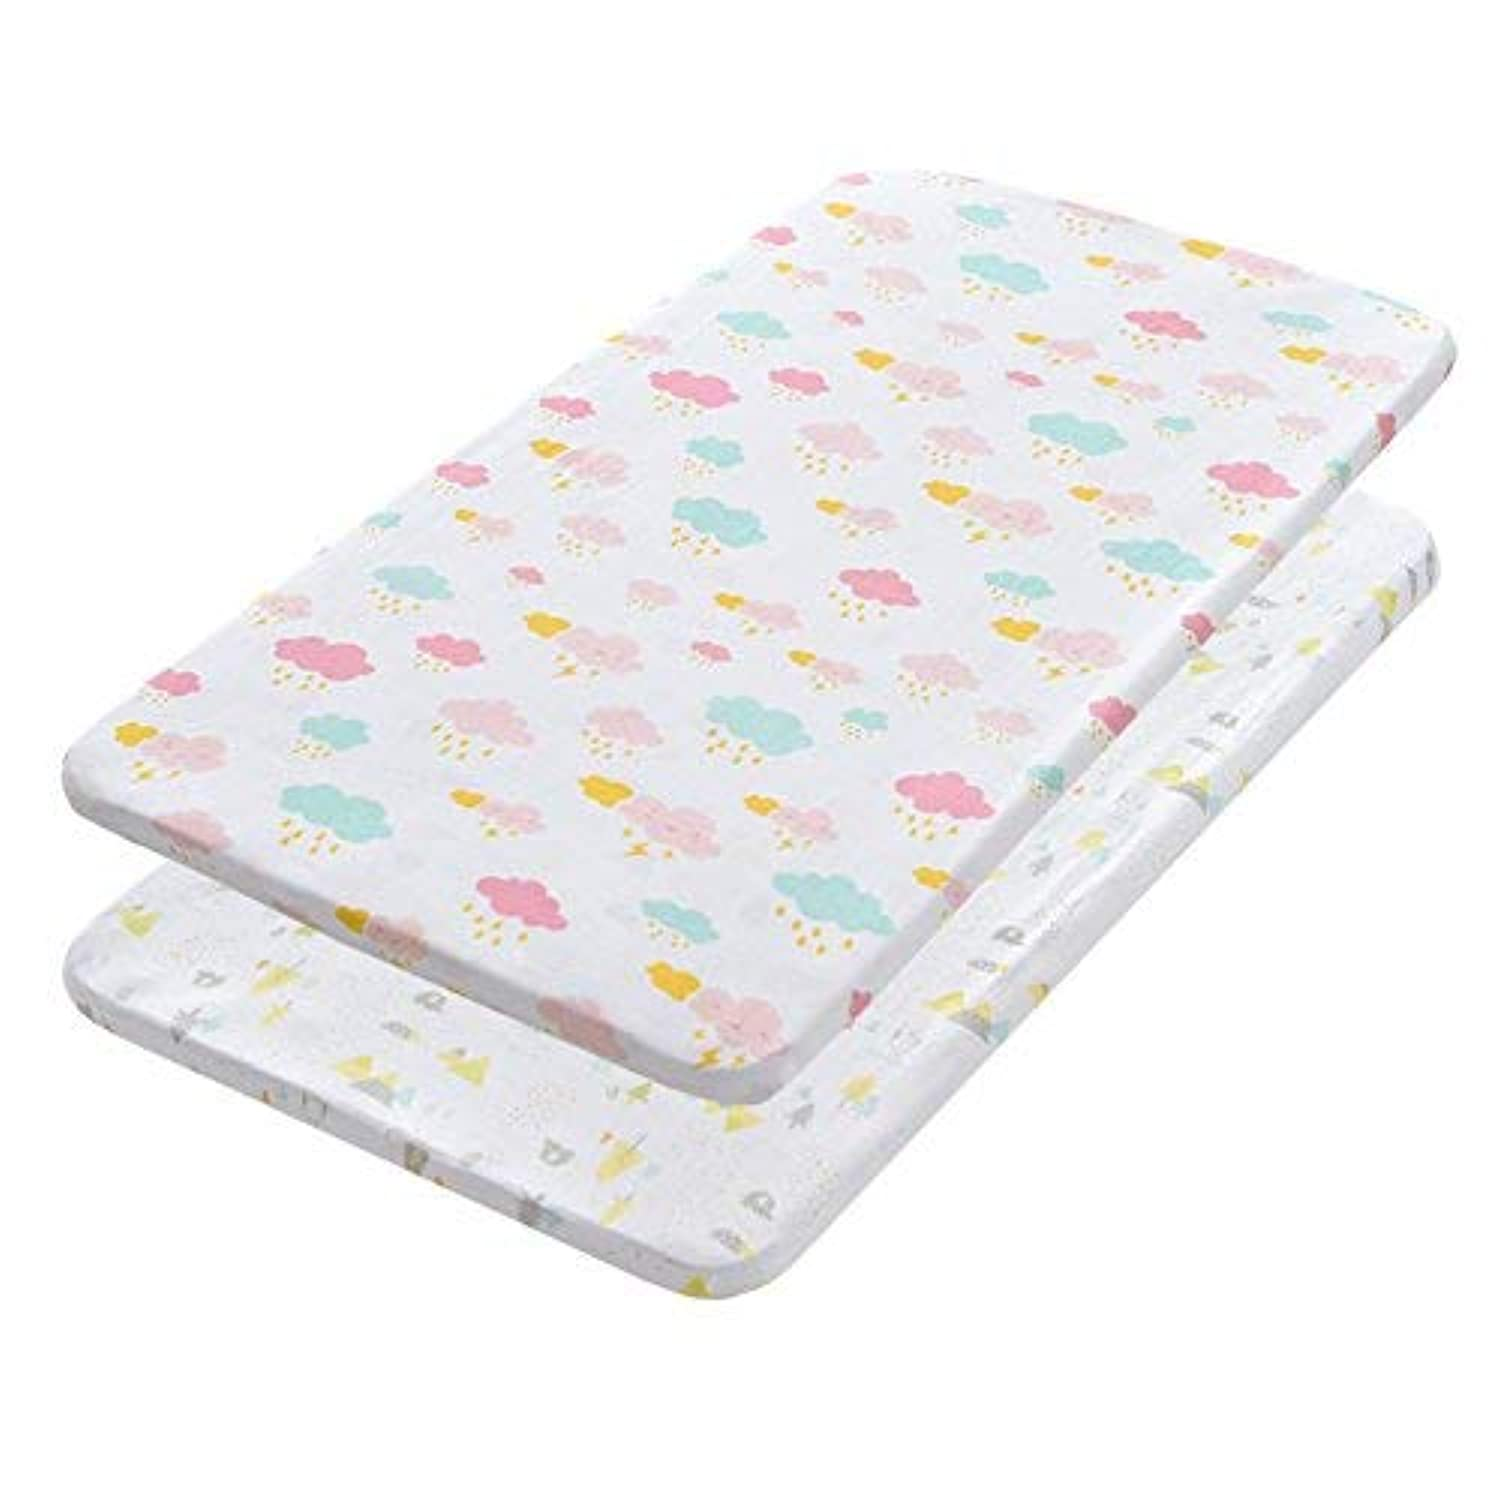 Gina Era Play Portable Crib Sheet Set 100% Jersey Cotton Unisex for Baby Girl and Boy2 Pack(style5) [並行輸入品]